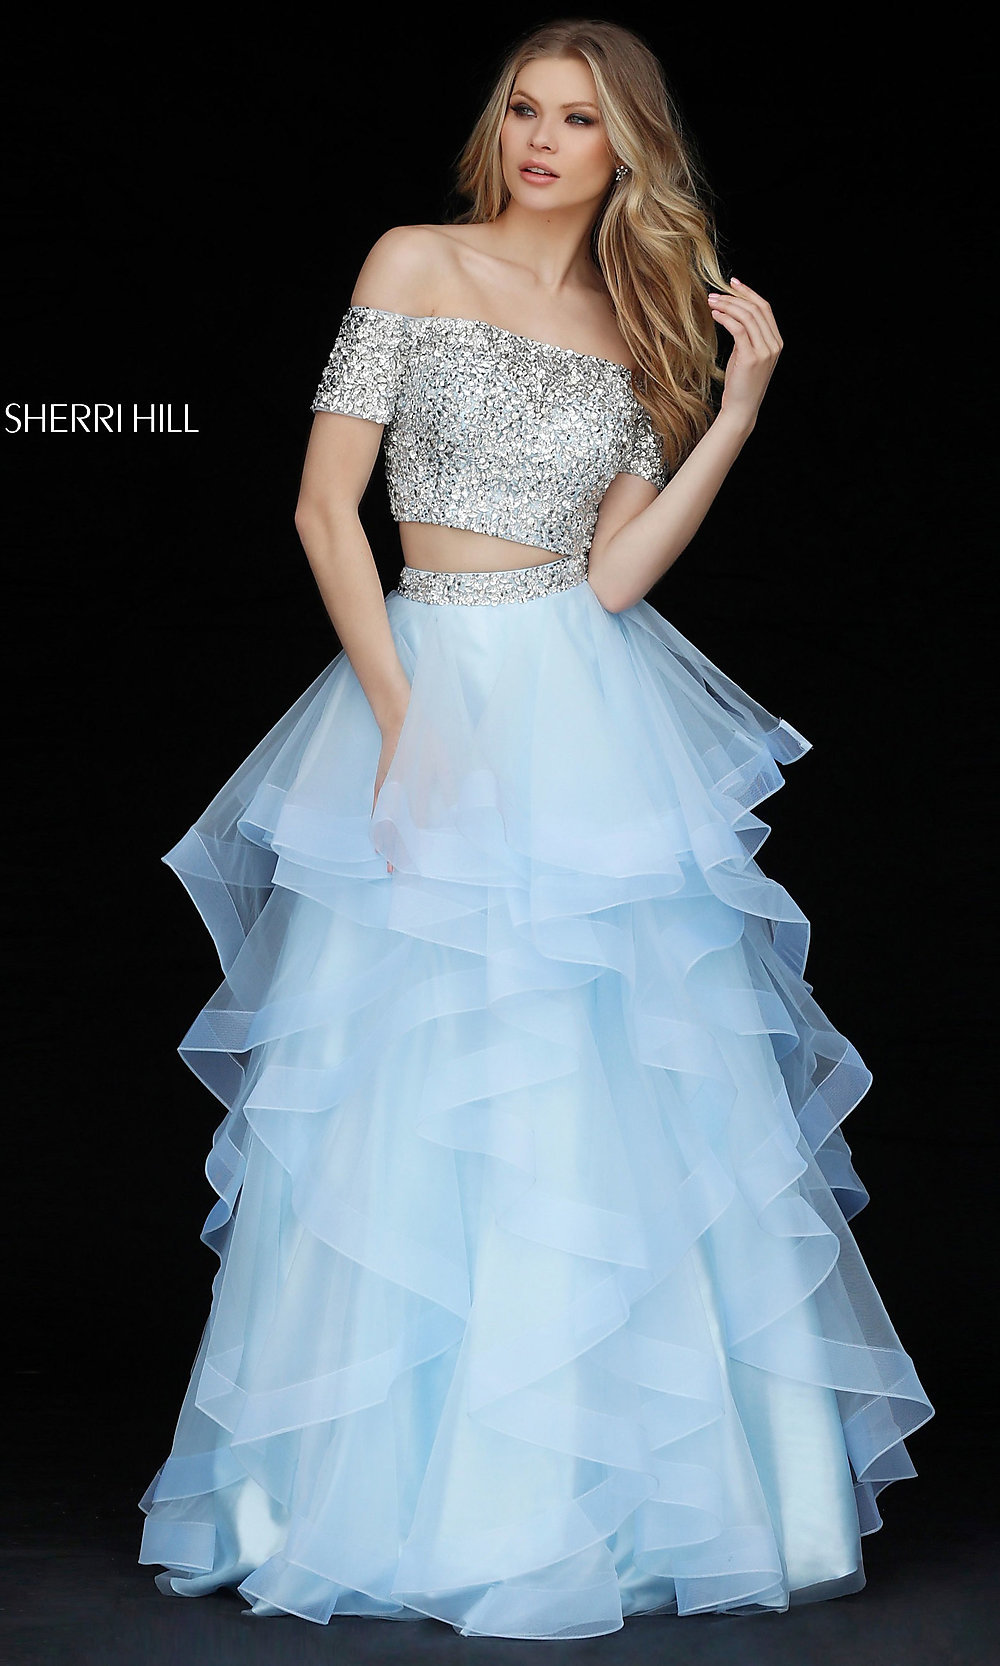 https://img.promgirl.com/_img/PGPRODUCTS/1732638/1000/light-blue-dress-SH-51272-a.jpg